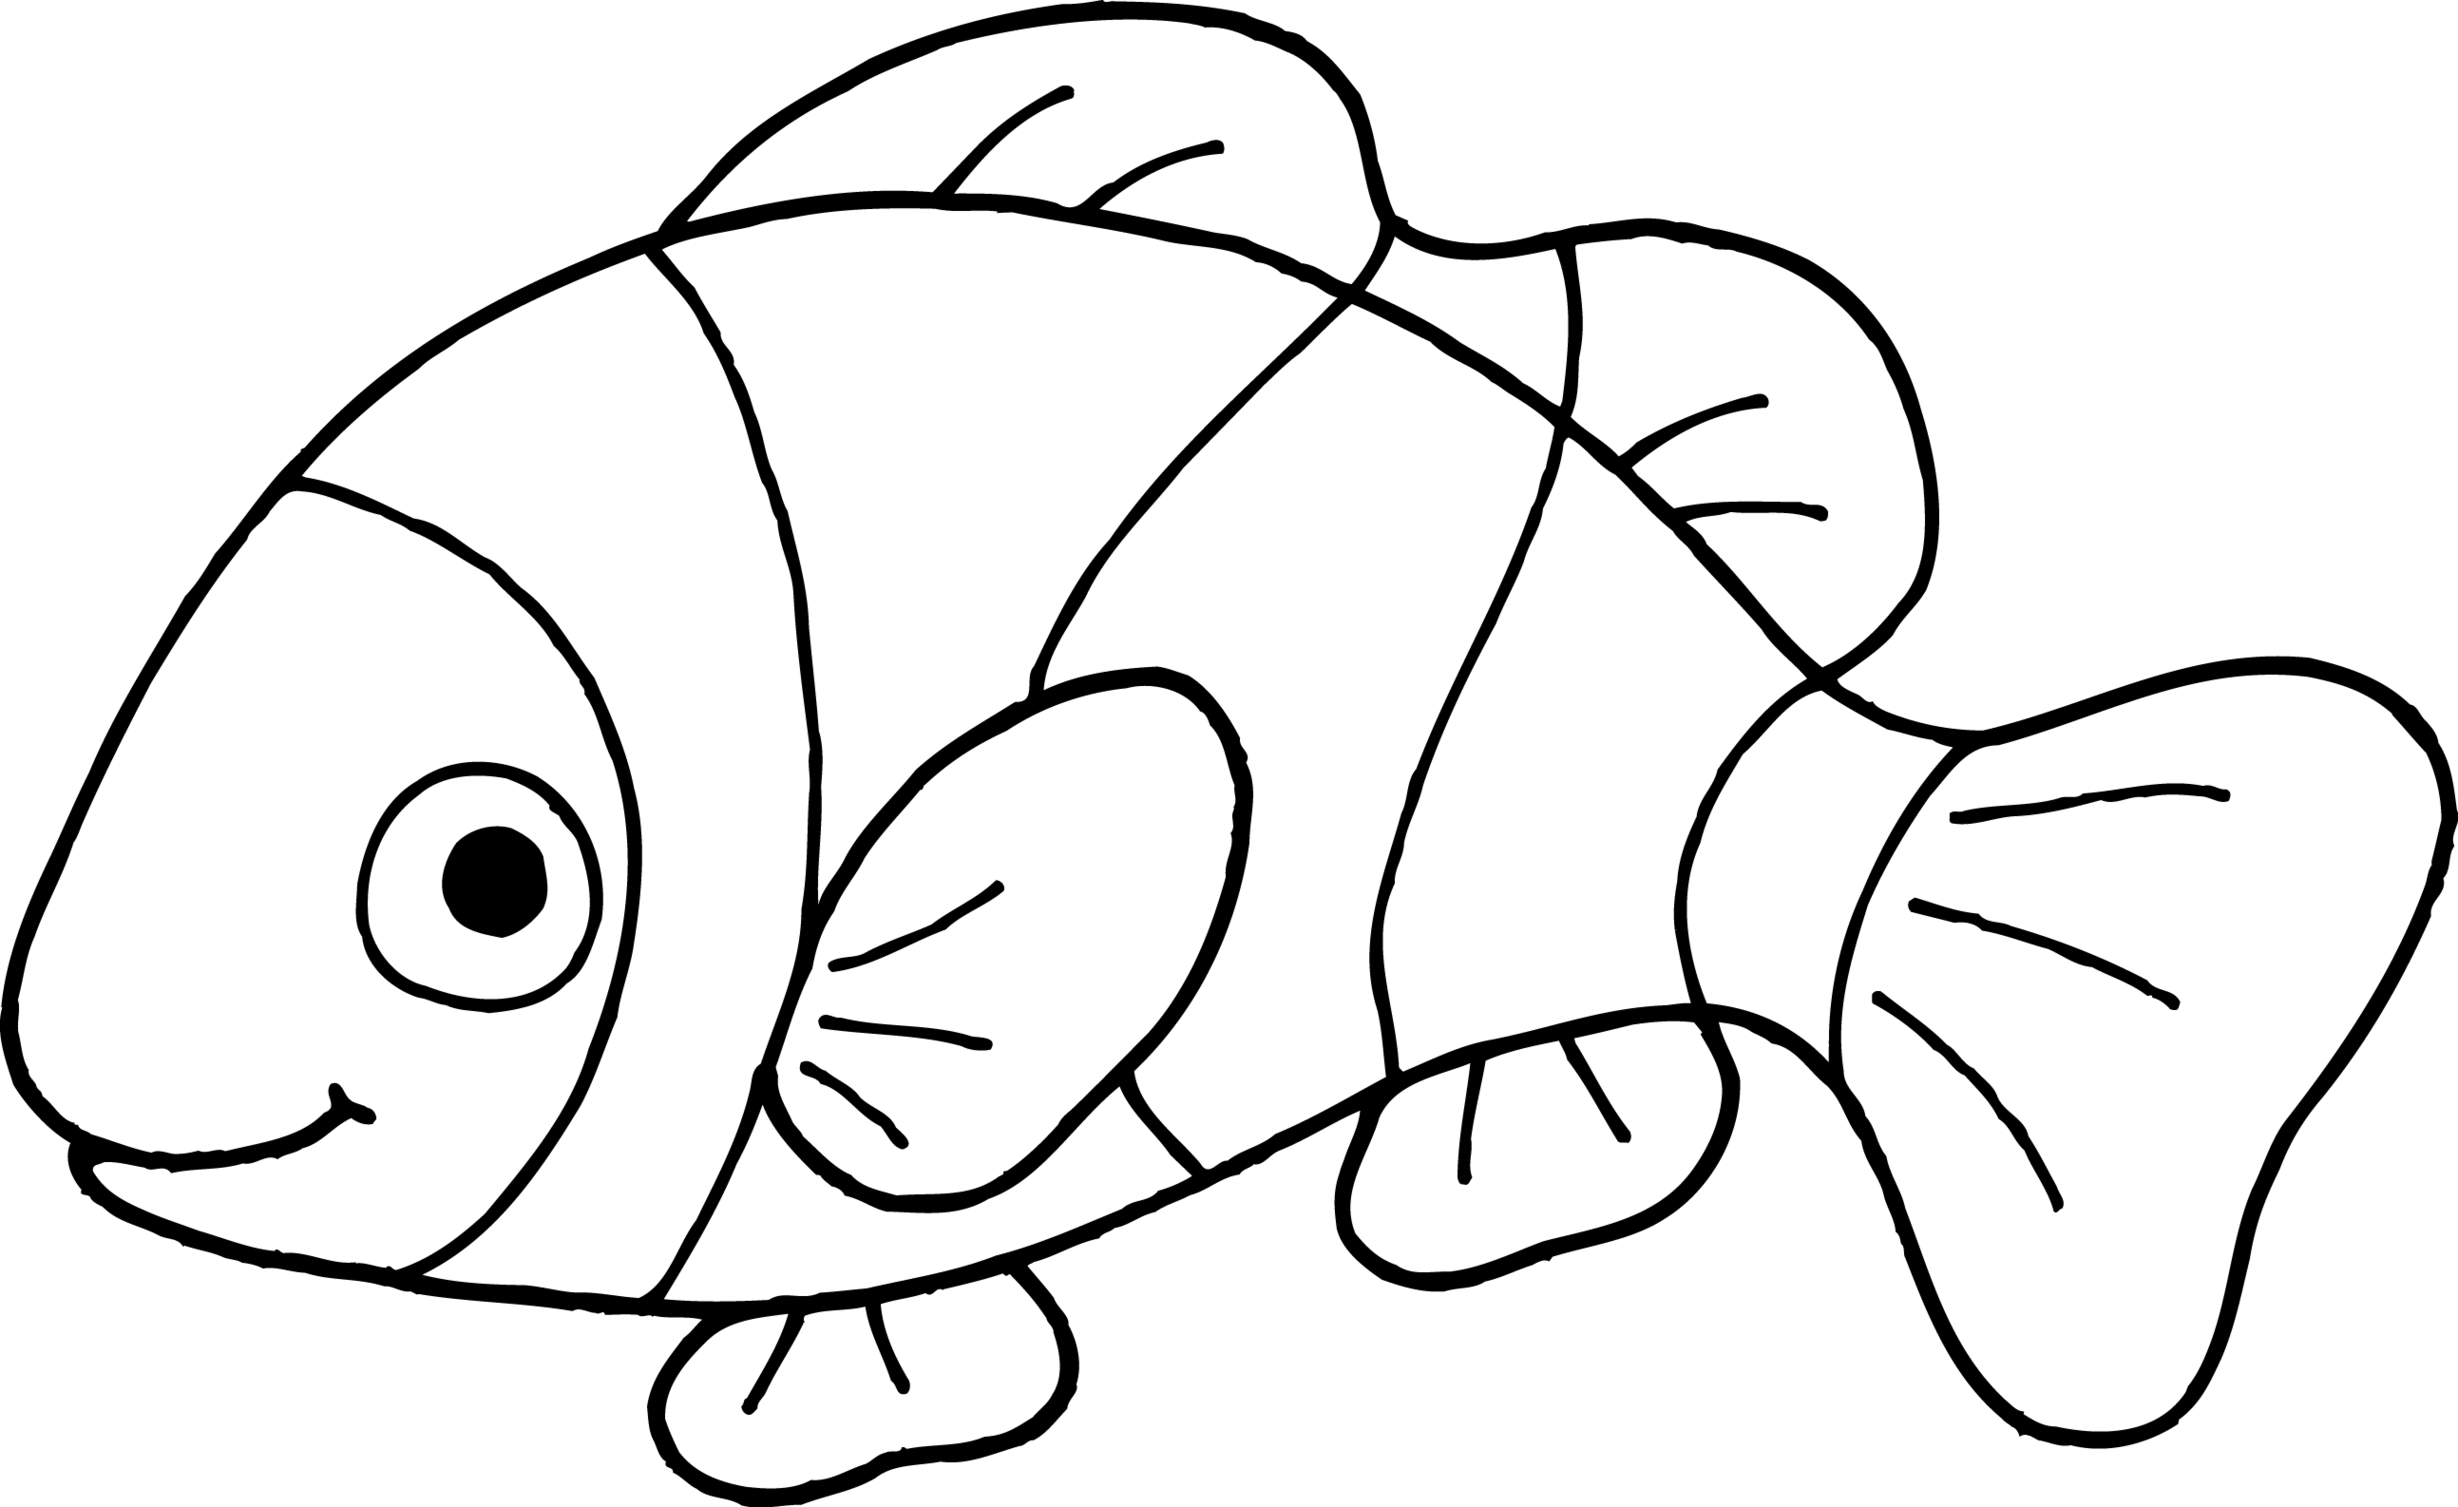 clown fish drawing fish drawing outline free download on clipartmag clown drawing fish